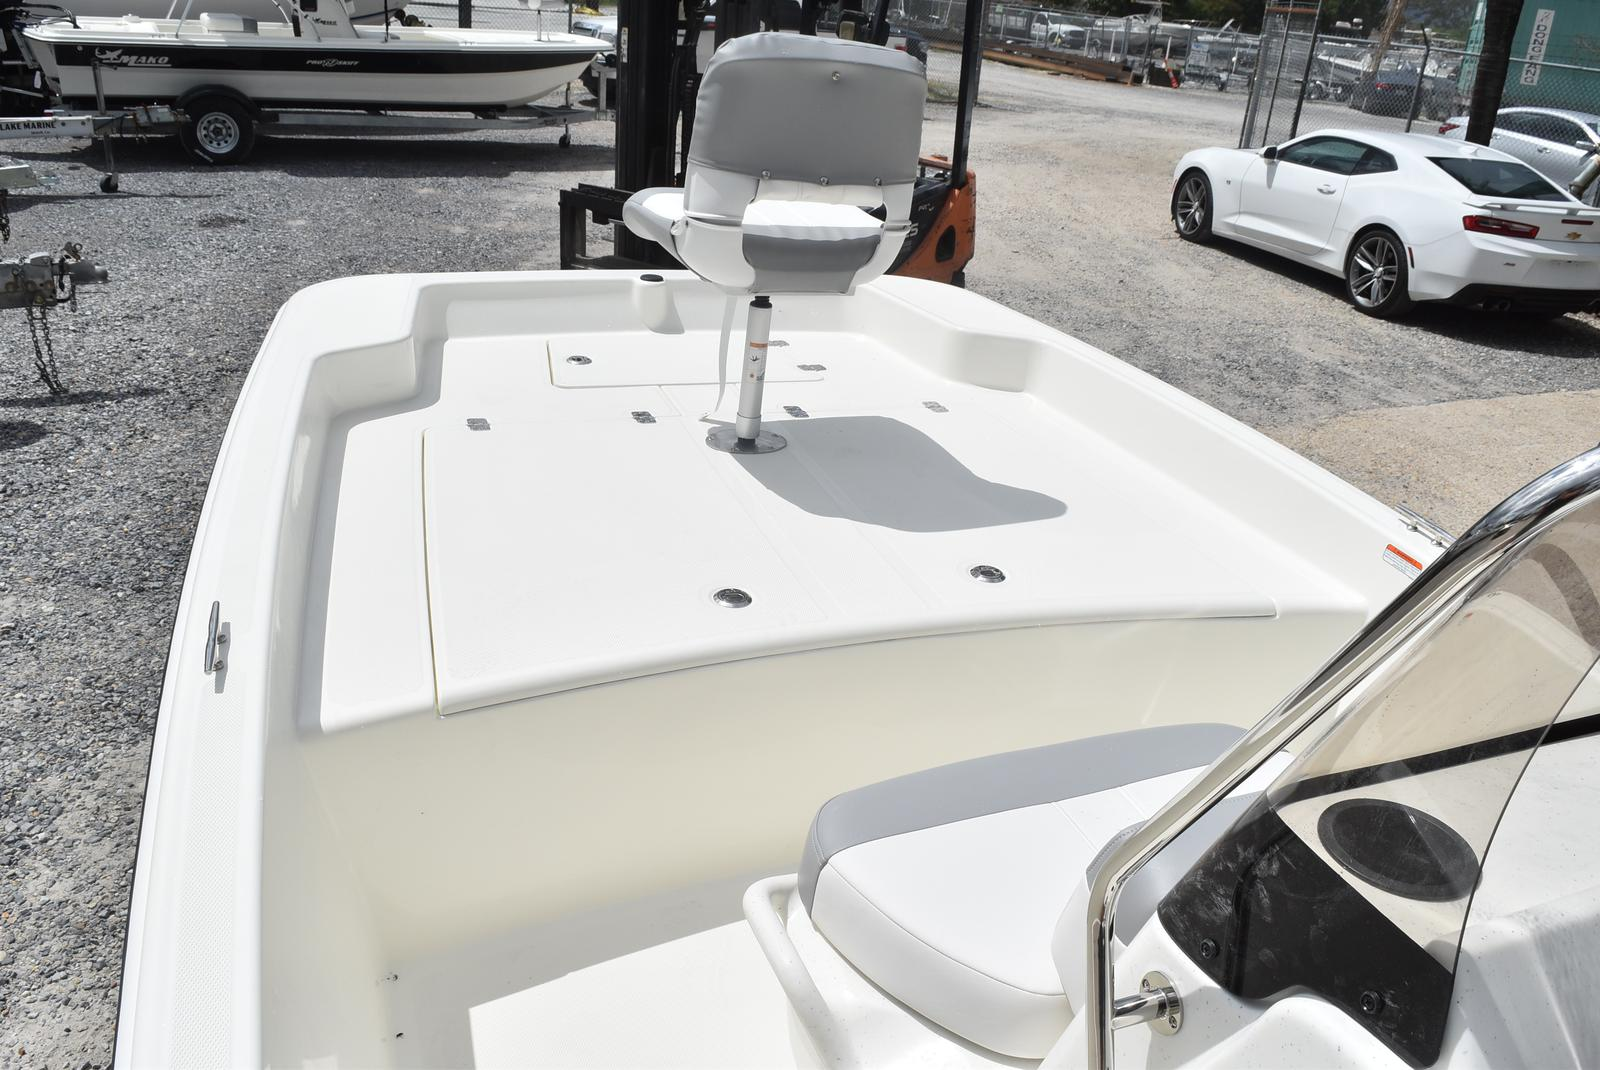 2020 Mako boat for sale, model of the boat is Pro Skiff 17, 75 ELPT & Image # 459 of 702